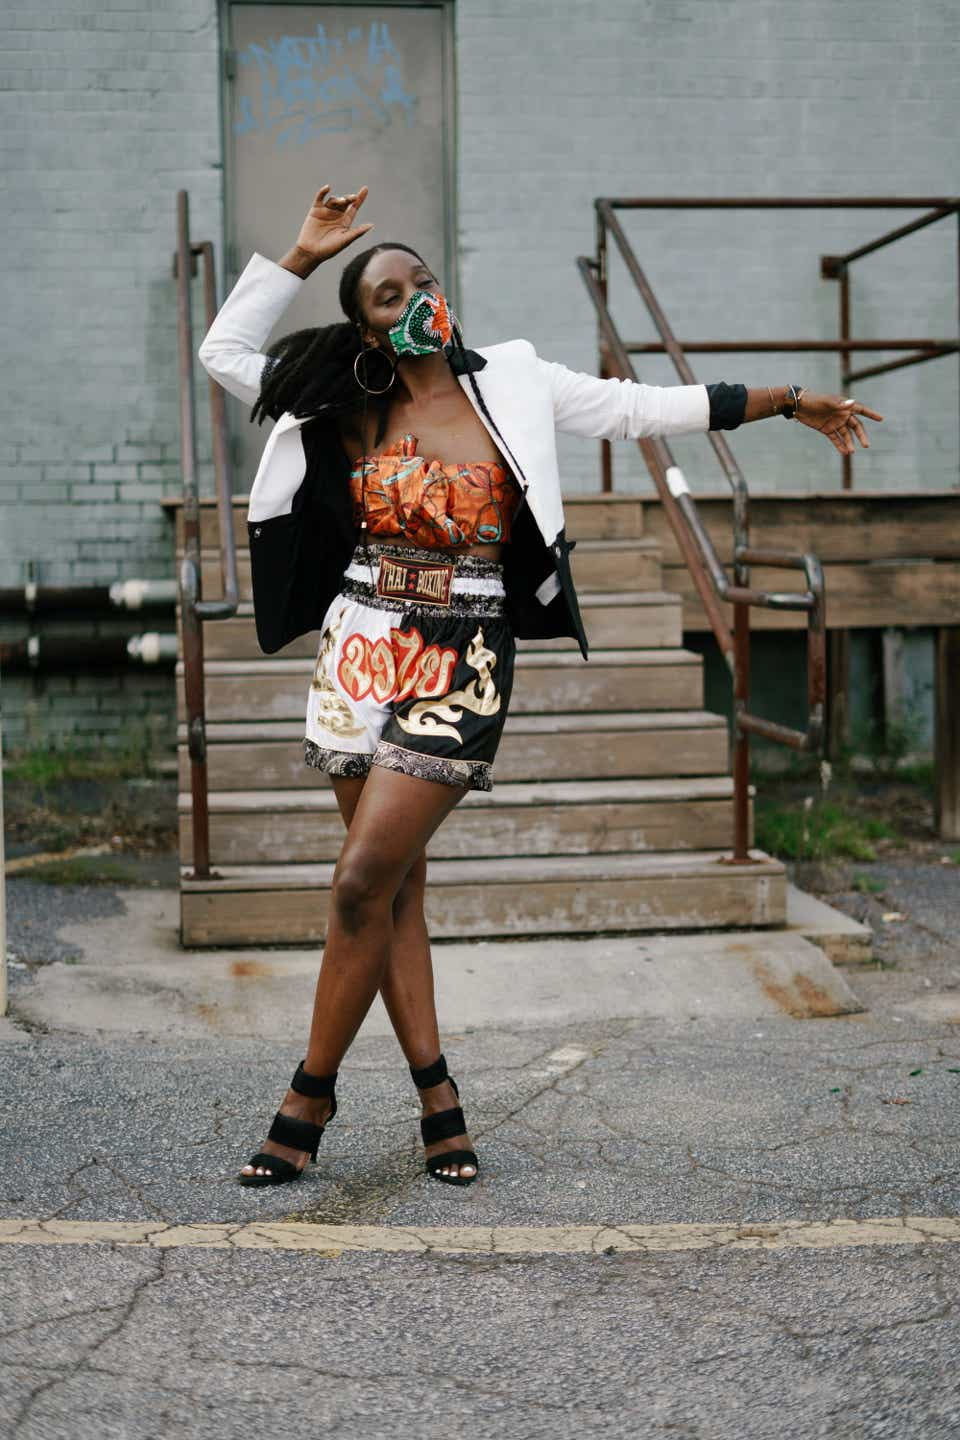 Naira is dancing while wearing a patterned orange tube top with Muay Thai boxing shorts and a black-and-white collared jacket. Her mask is green and orange, and she has gold hoop earrings and black sandals on.